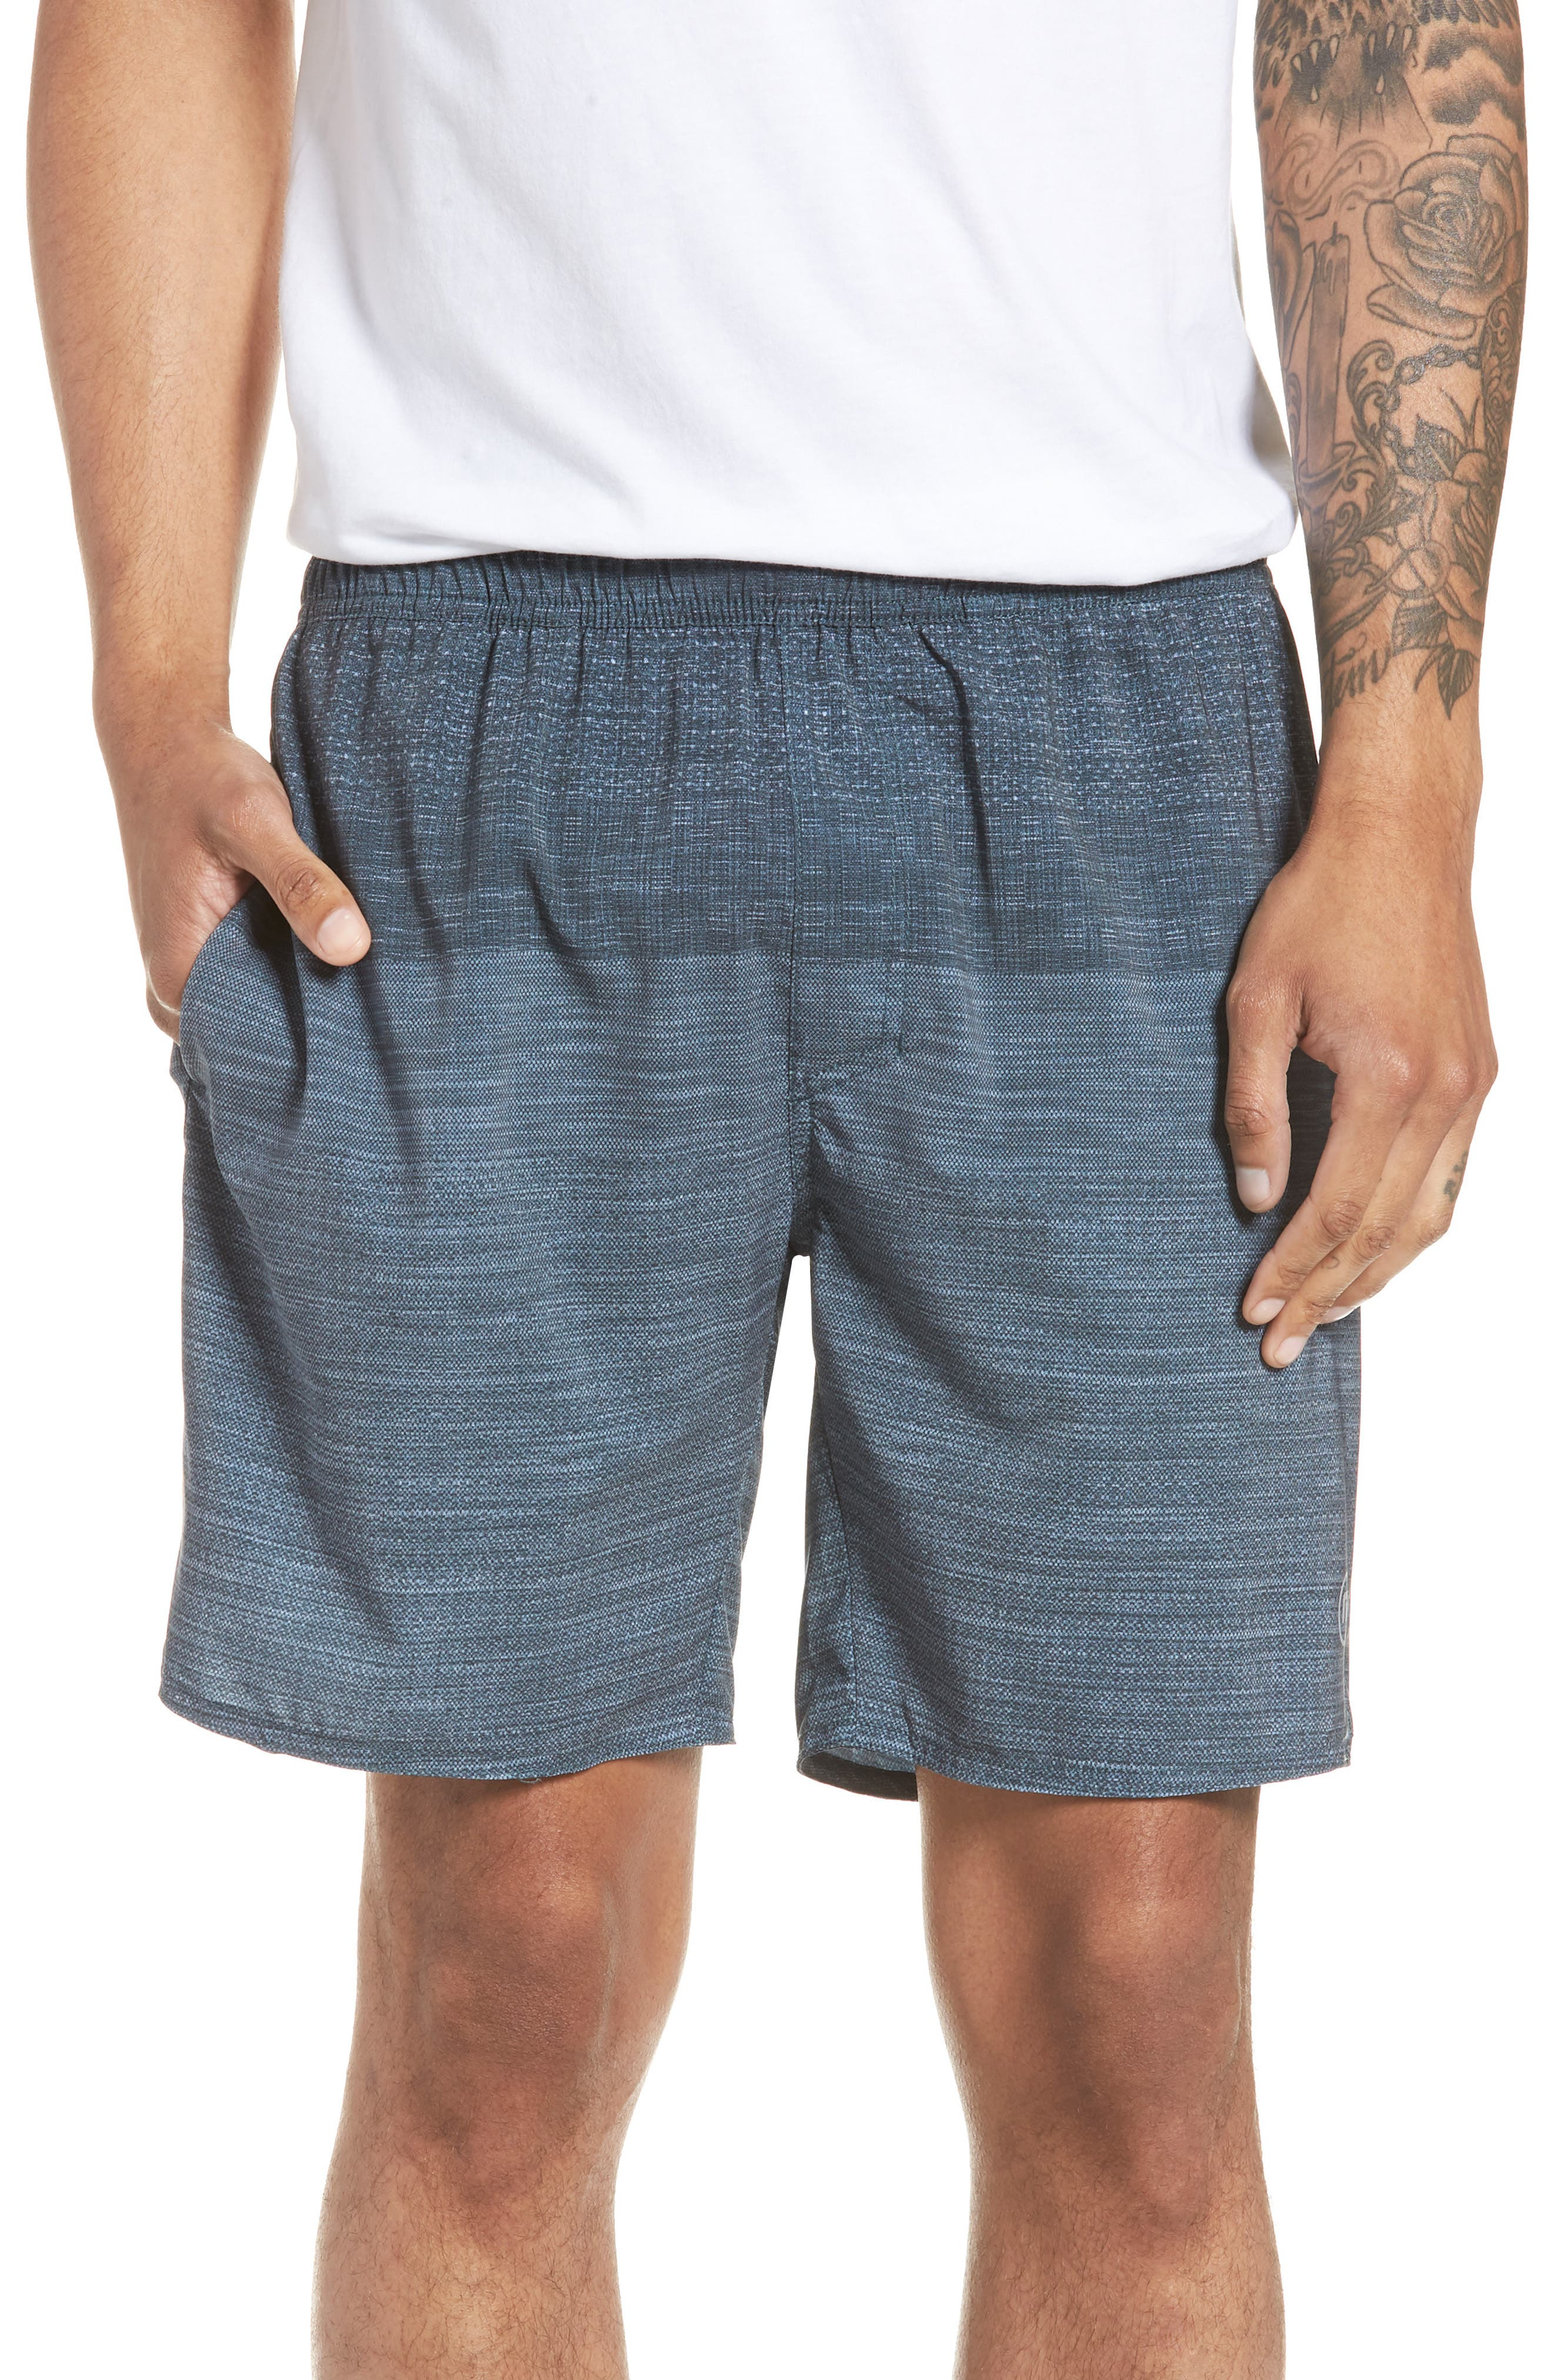 Tempo Performance Shorts,                             Main thumbnail 1, color,                             Heather Quiet Shade